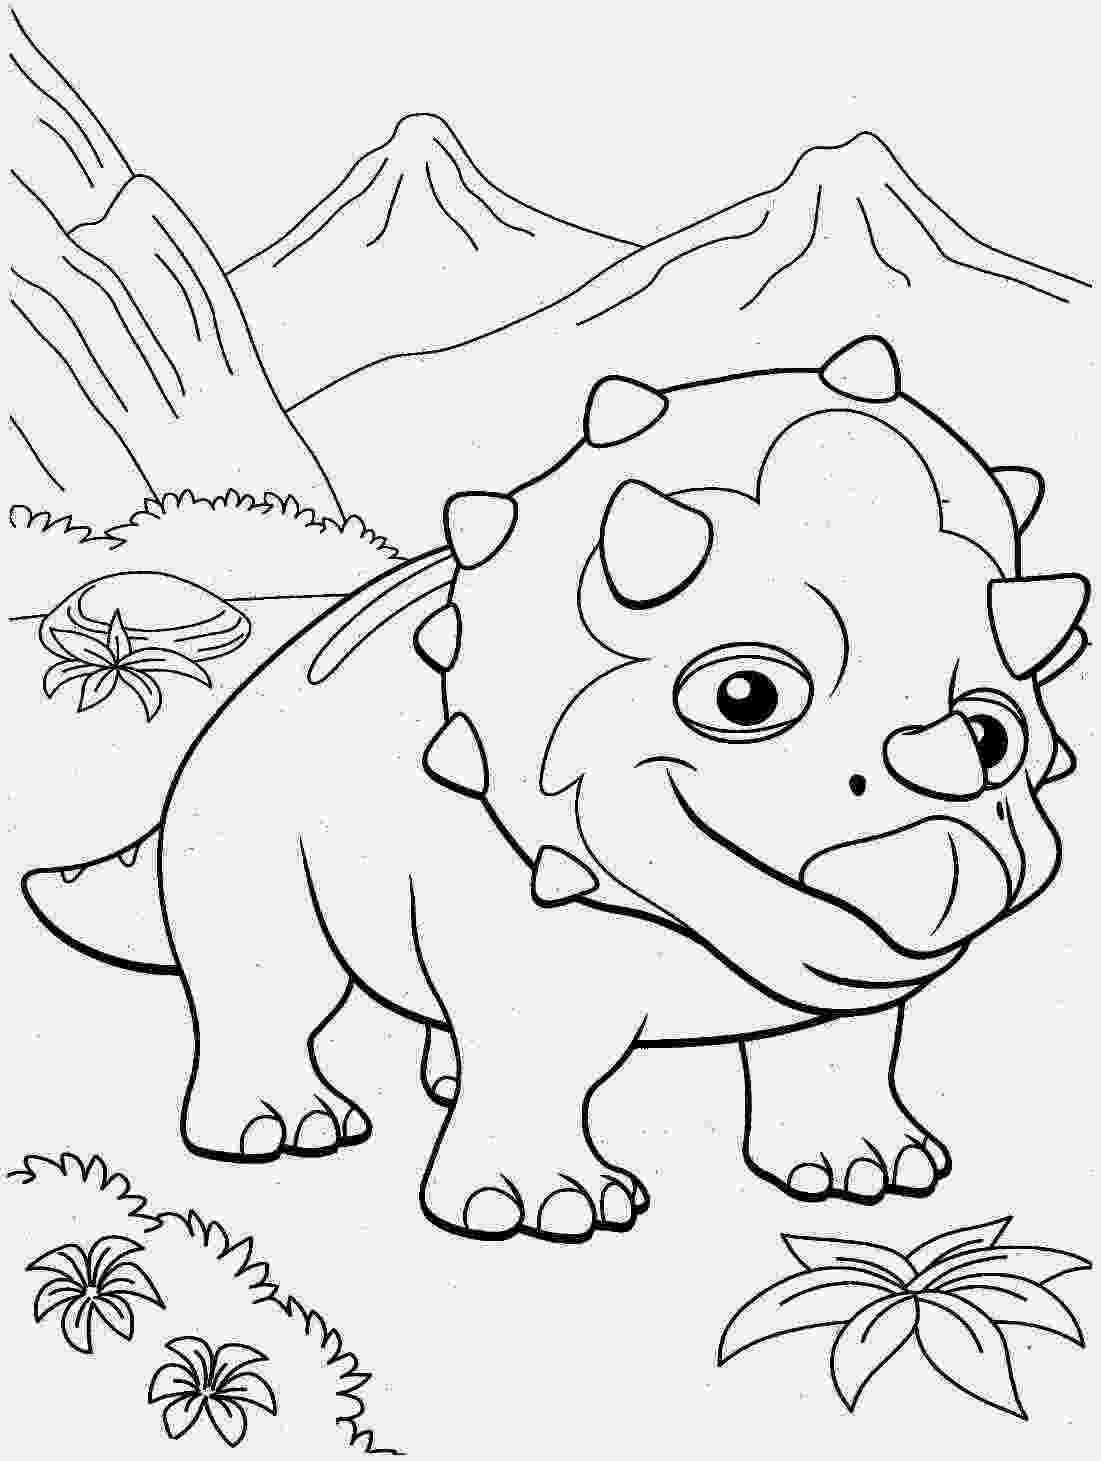 dinosaur pictures to color and print coloring pages dinosaur free printable coloring pages pictures dinosaur to color print and